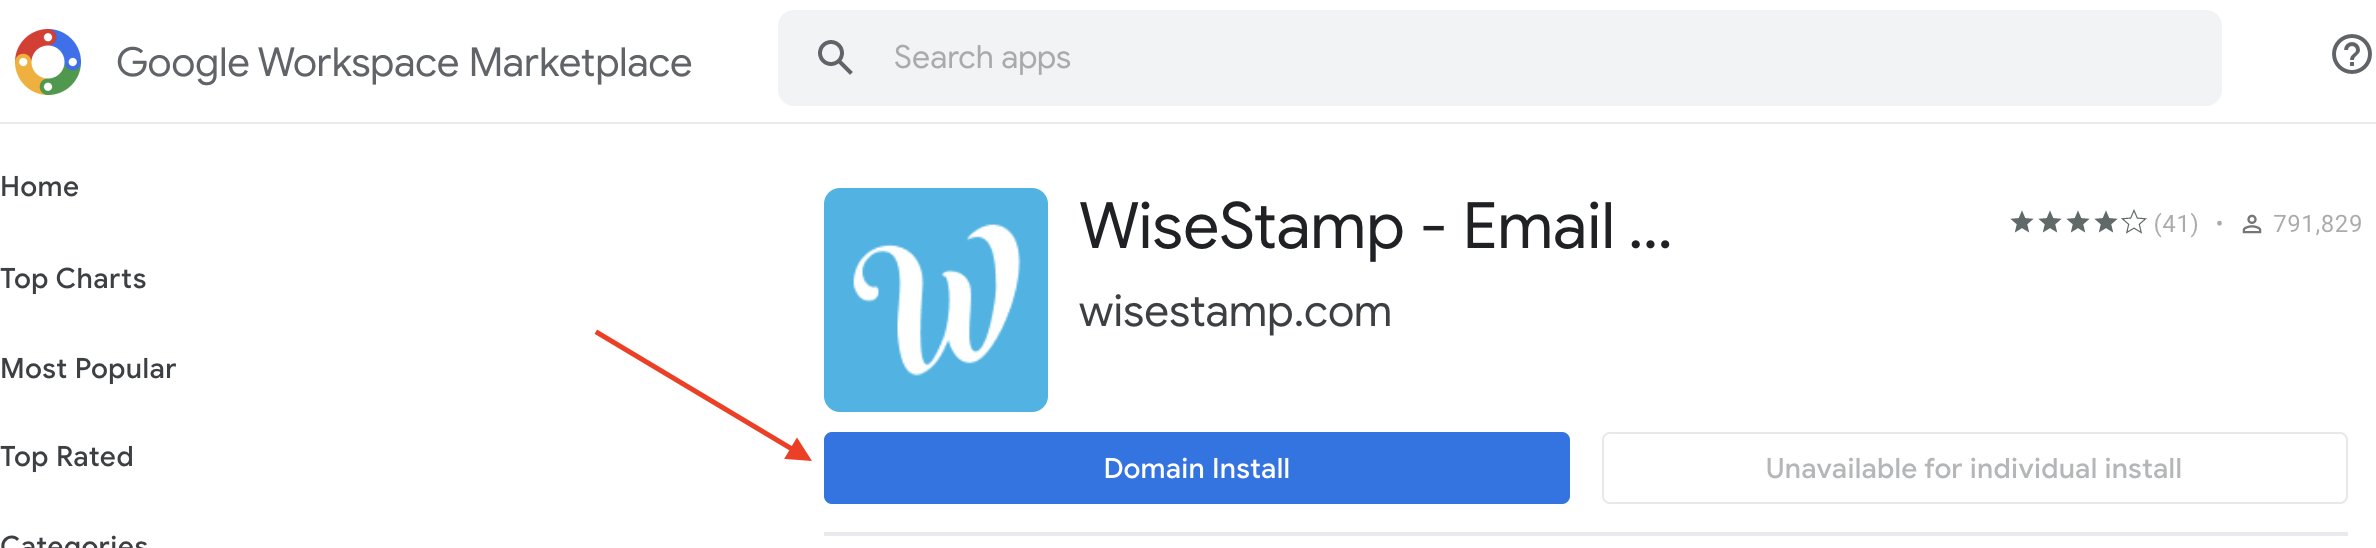 Screen_shot_of_WiseStamp_installation_on_the_Google_Marketplace.png